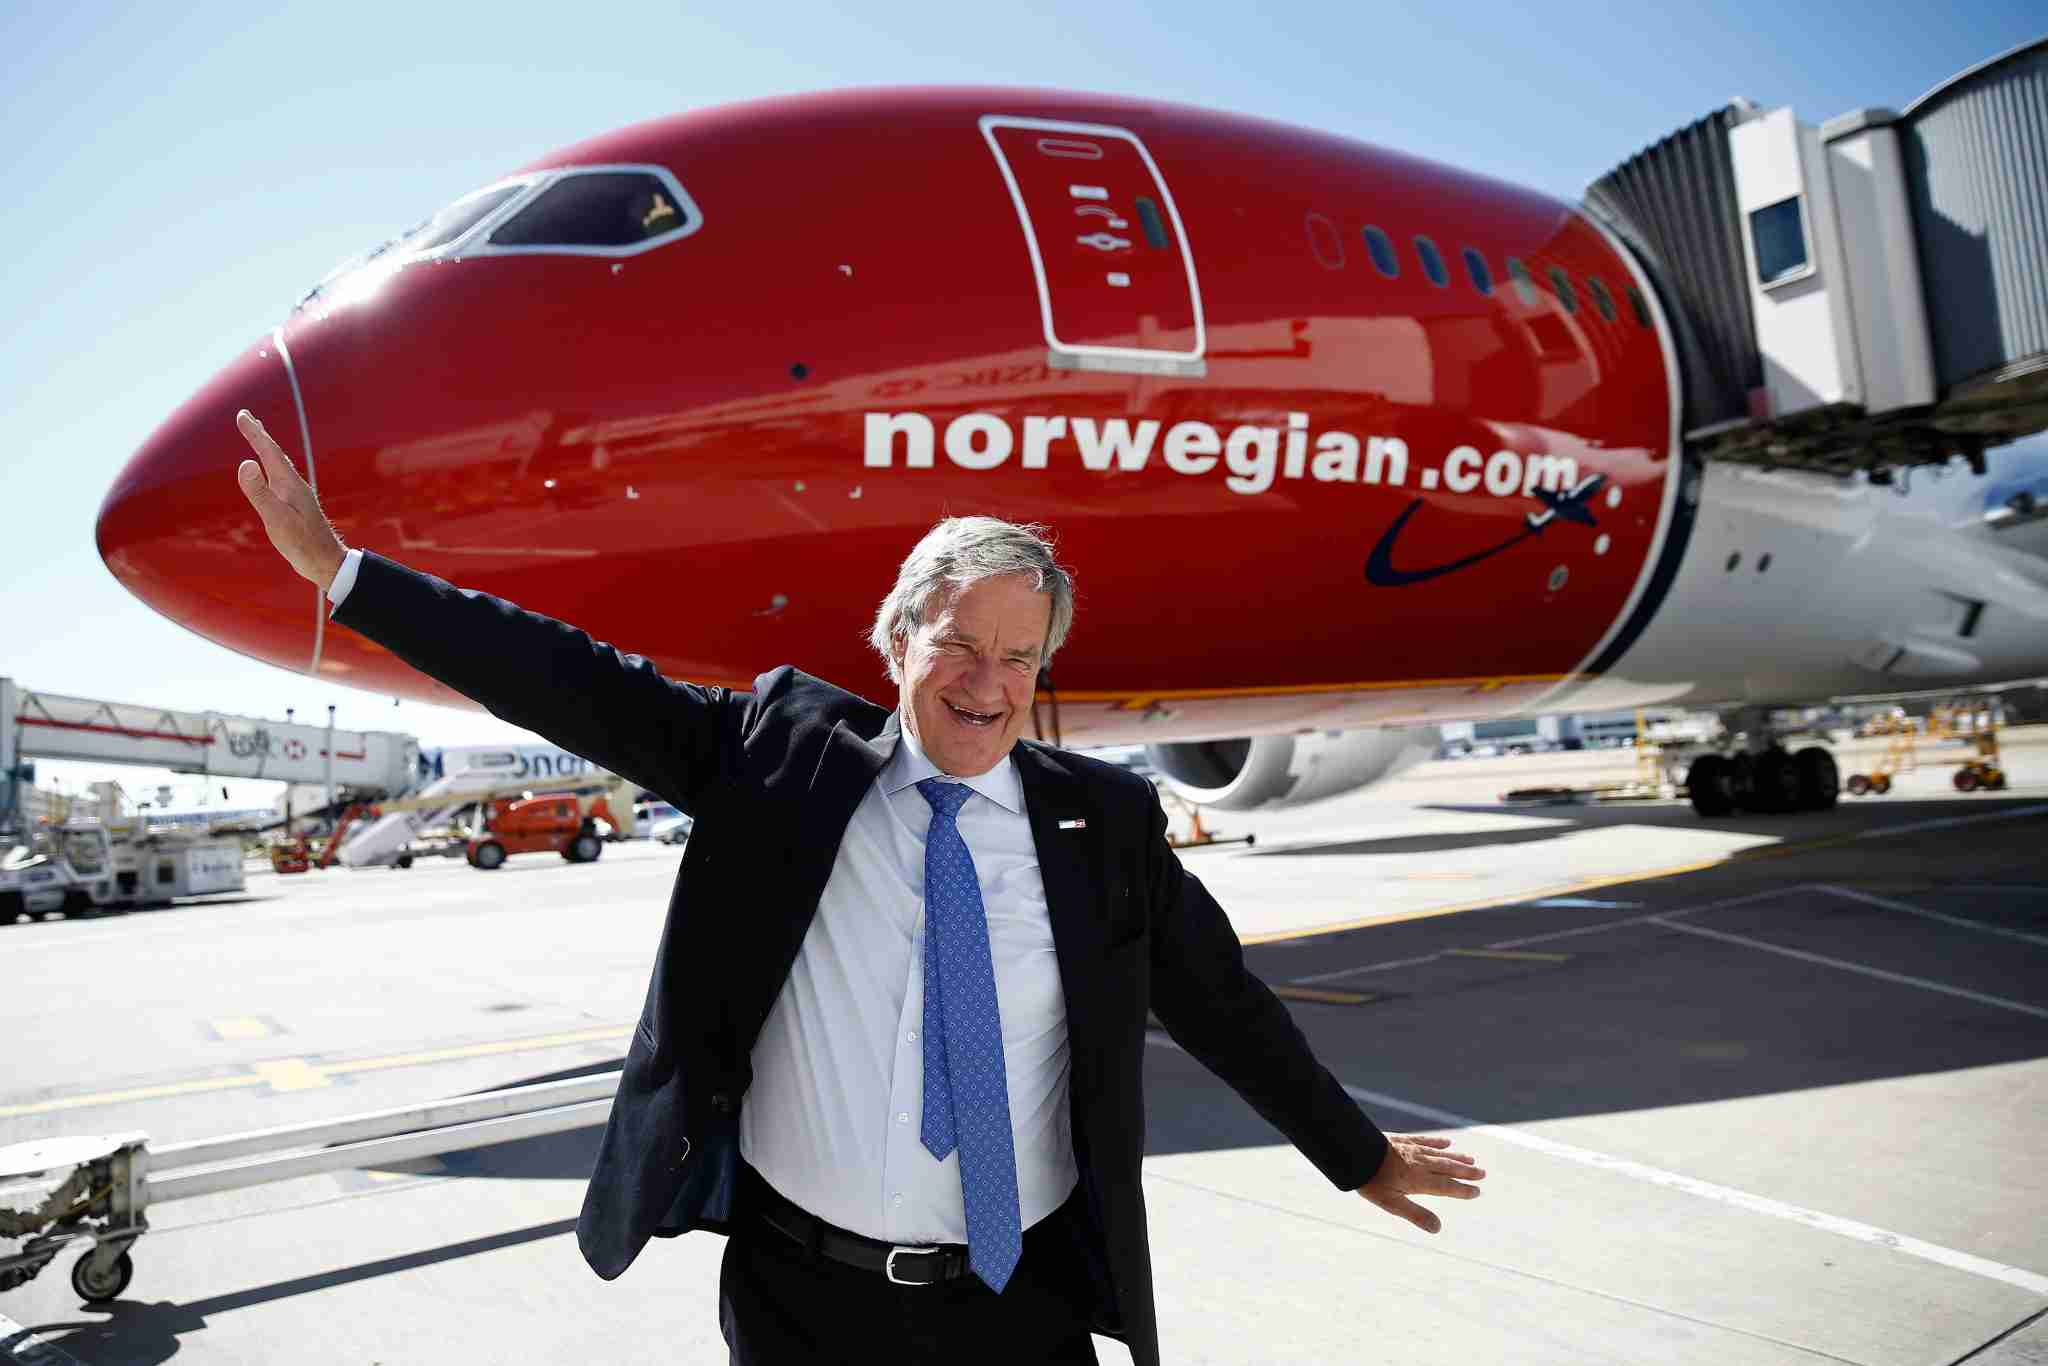 Bjoern Kjos, chief executive officer of Norwegian Air Shuttle AS, poses for a photograph with his arms outstretched in front of a Boeing Co. 787 Dreamliner, ahead of the company